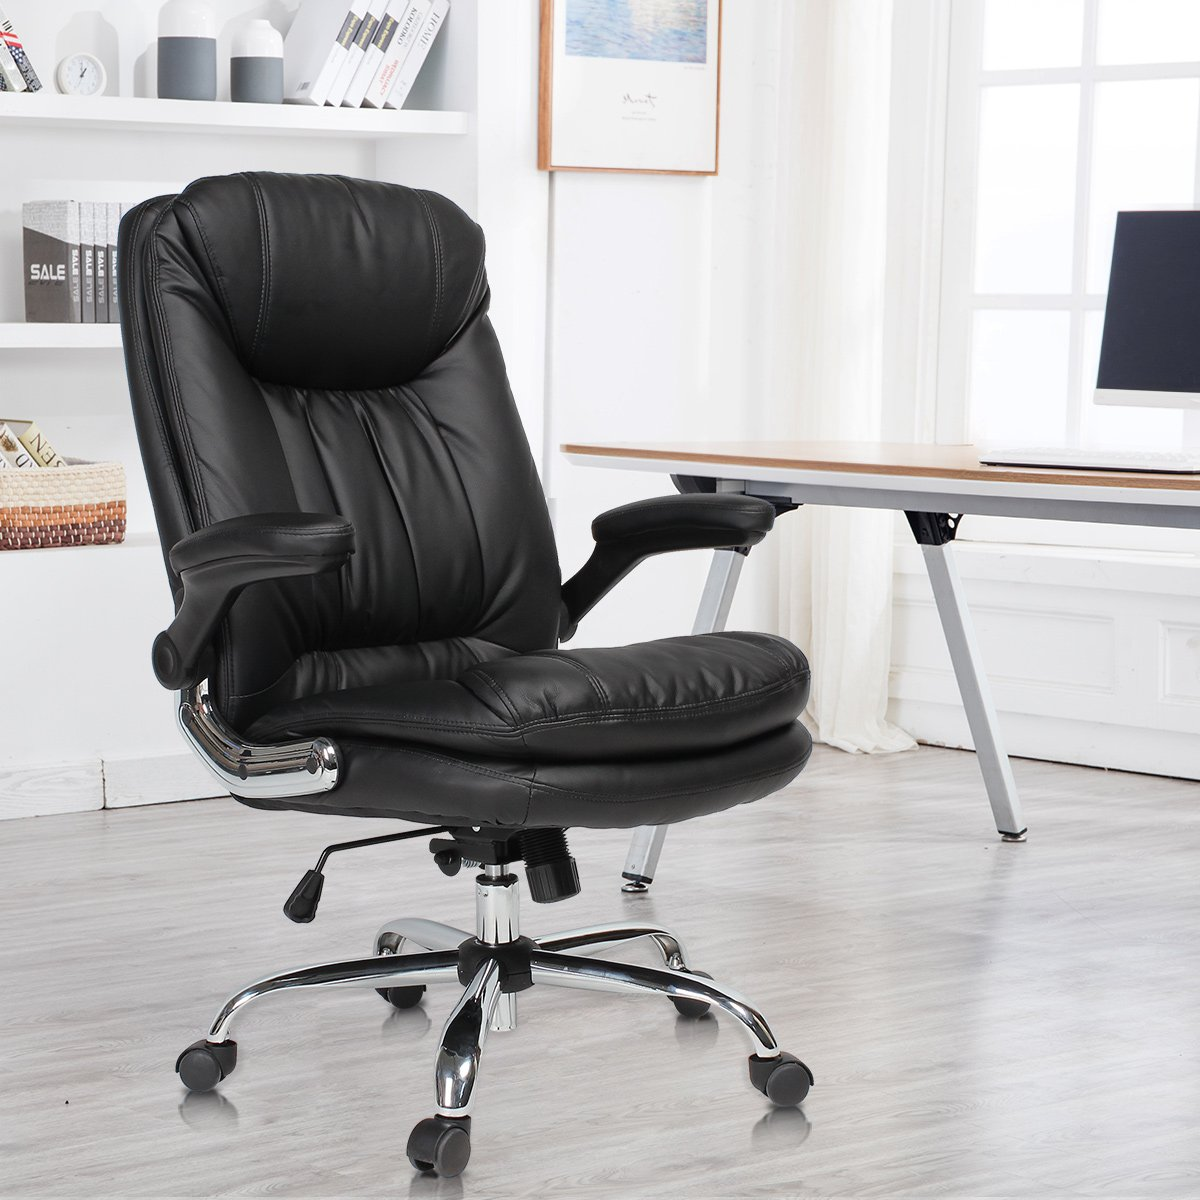 YAMASORO Ergonomic Home Office Chair with Flip-Up Arms and Comfy Headrest PU Leather High-Back Computer Desk Chair Big and Tall Capacity 330lbs Black by YAMASORO (Image #1)